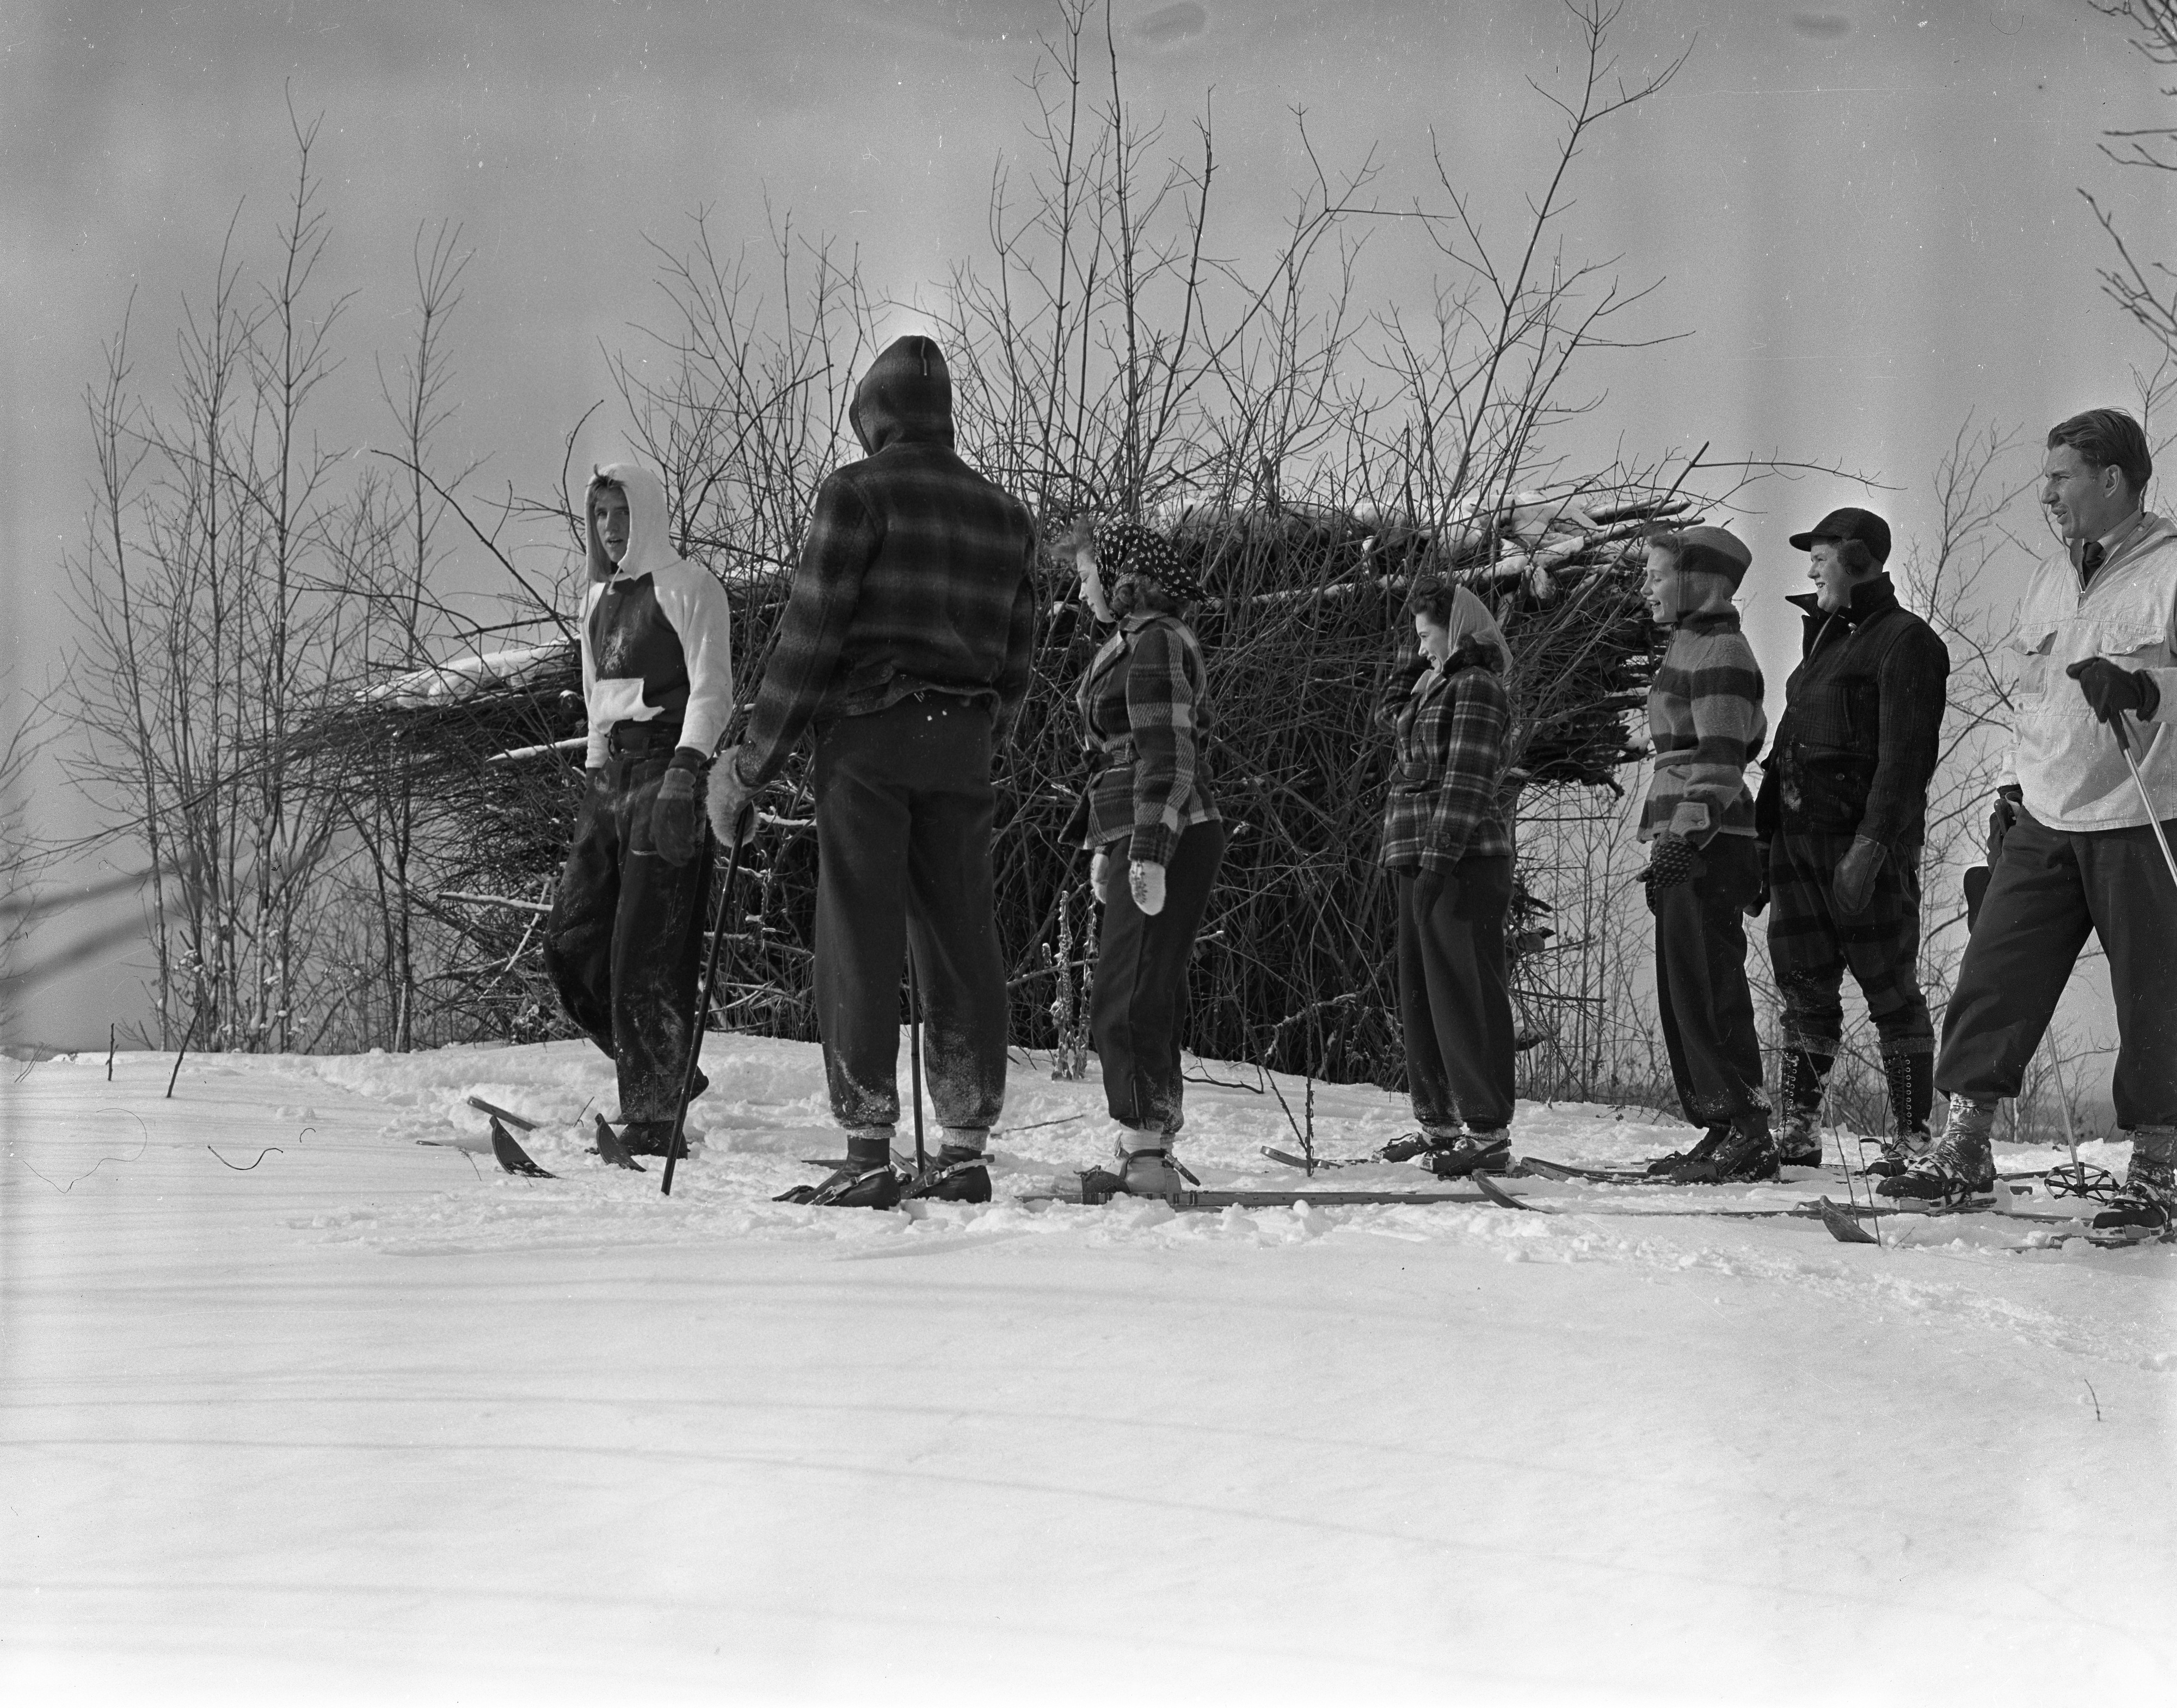 Skiers At Caberfae Outside Of Wooden Structure, February 1940 image